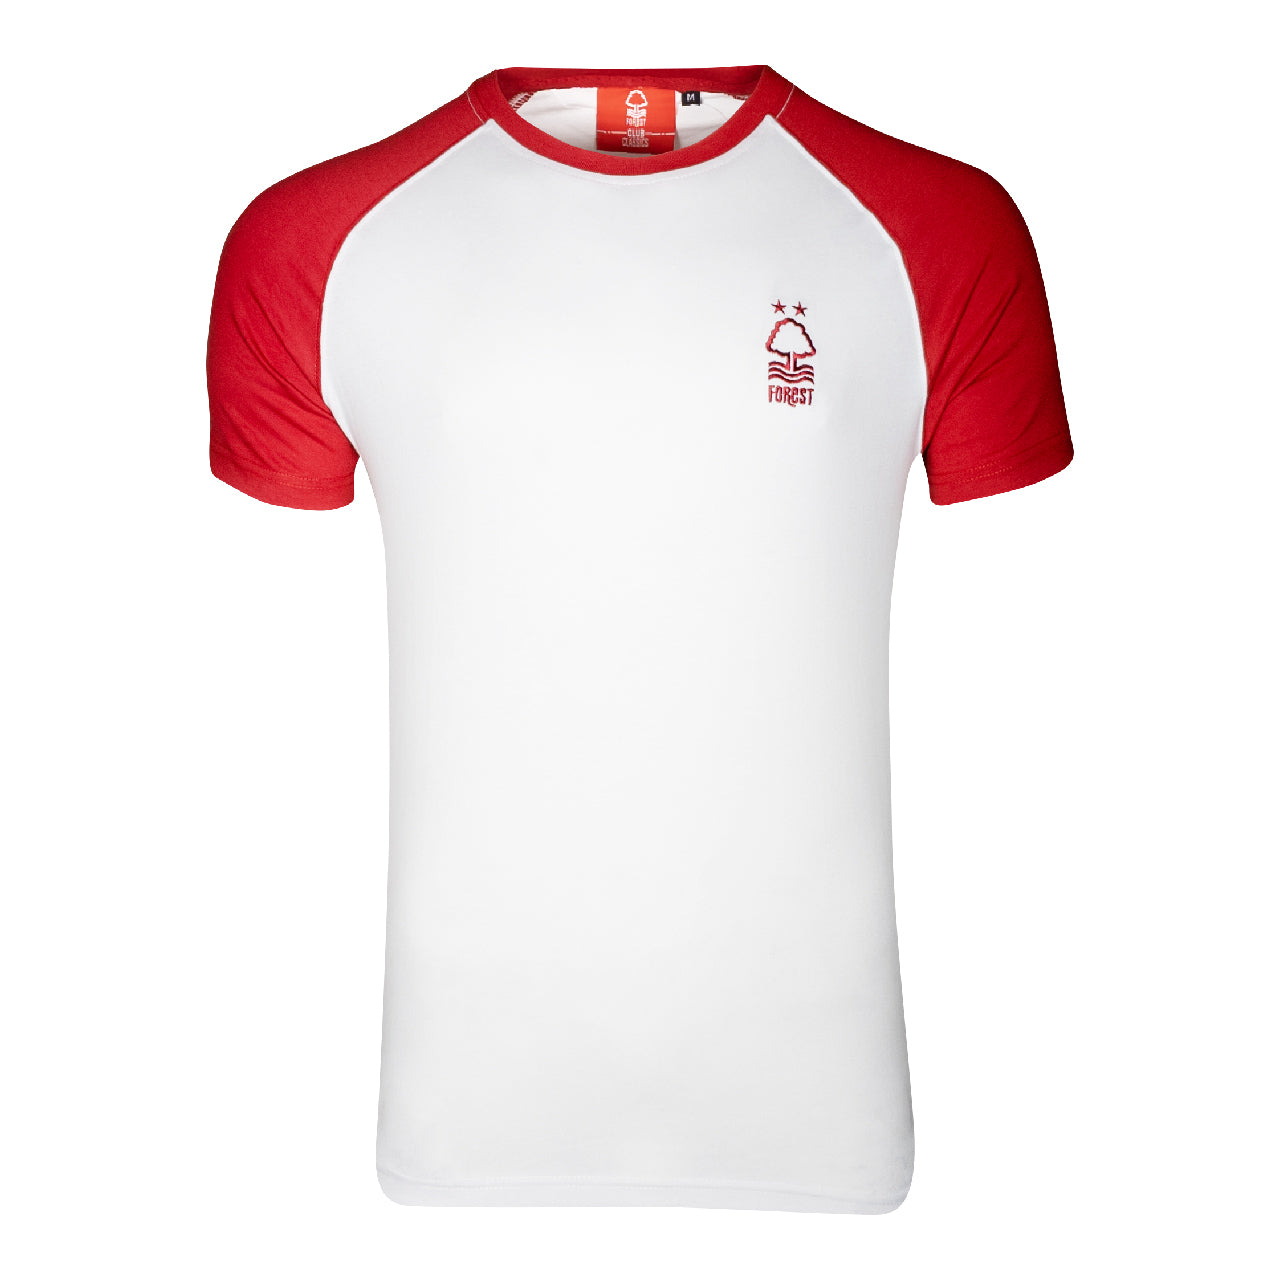 NFFC Mens White Essential Raglan T-Shirt